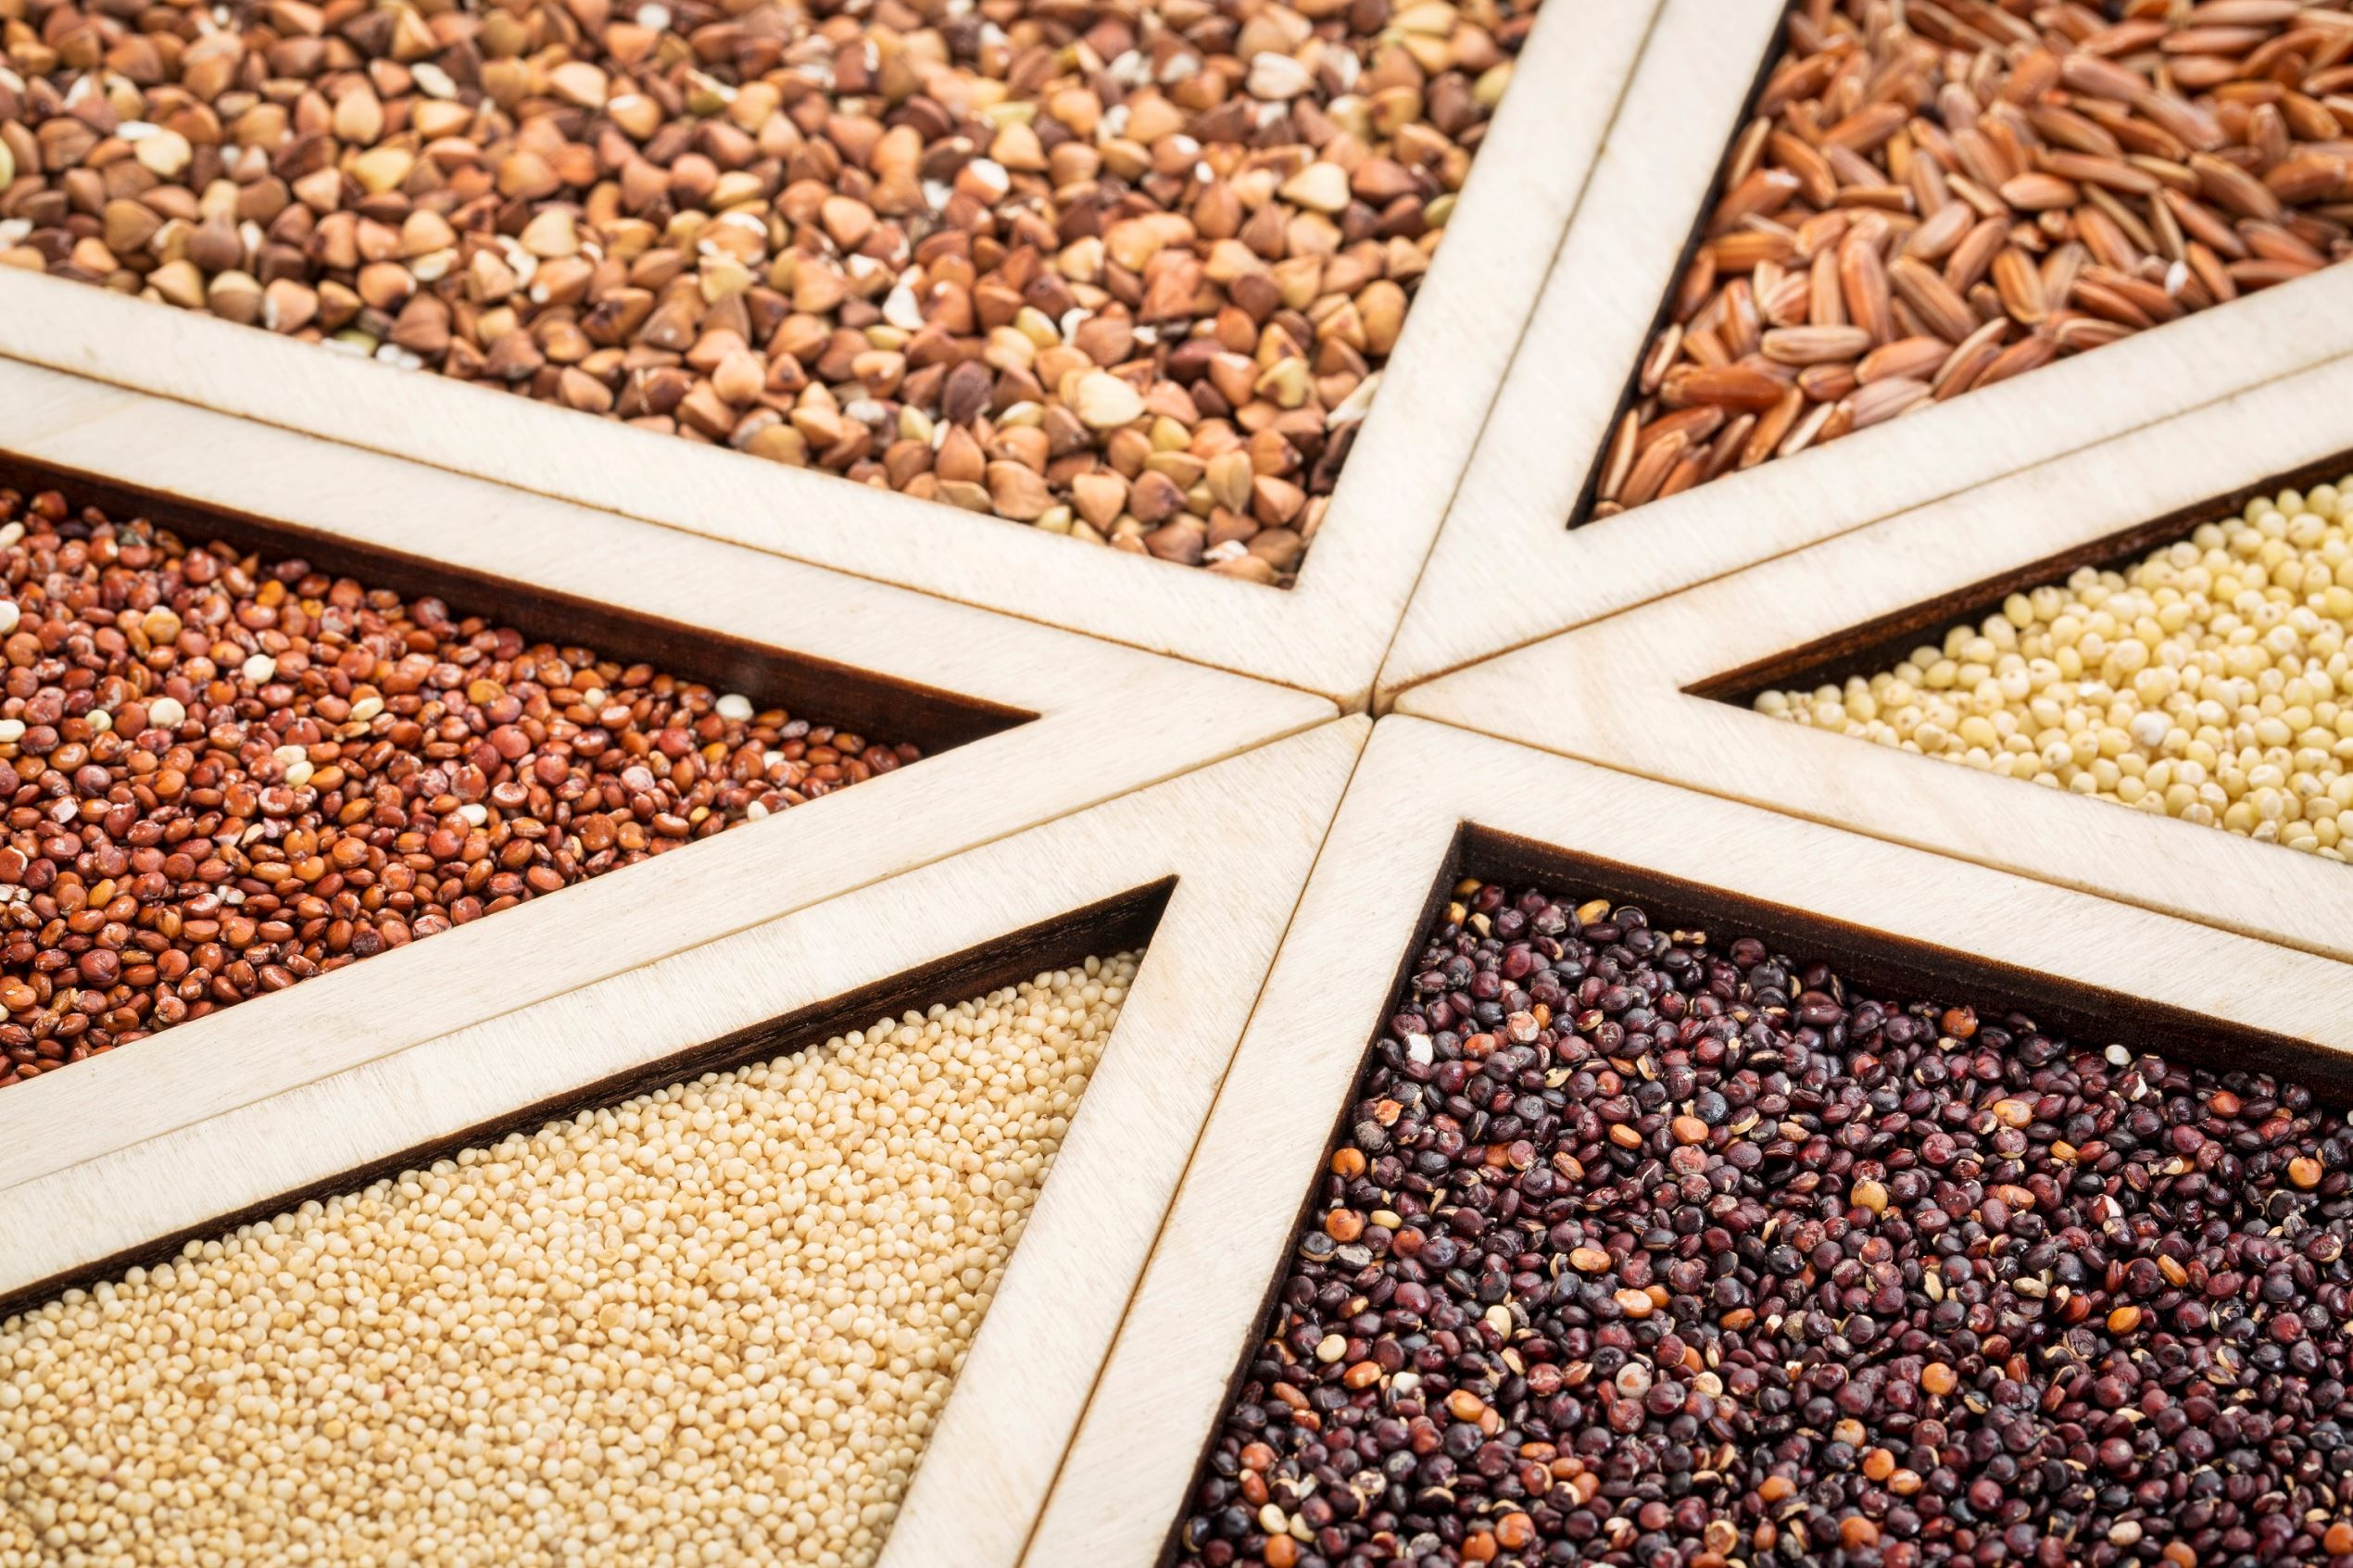 Grains With as Many Health Benefits as Quinoa